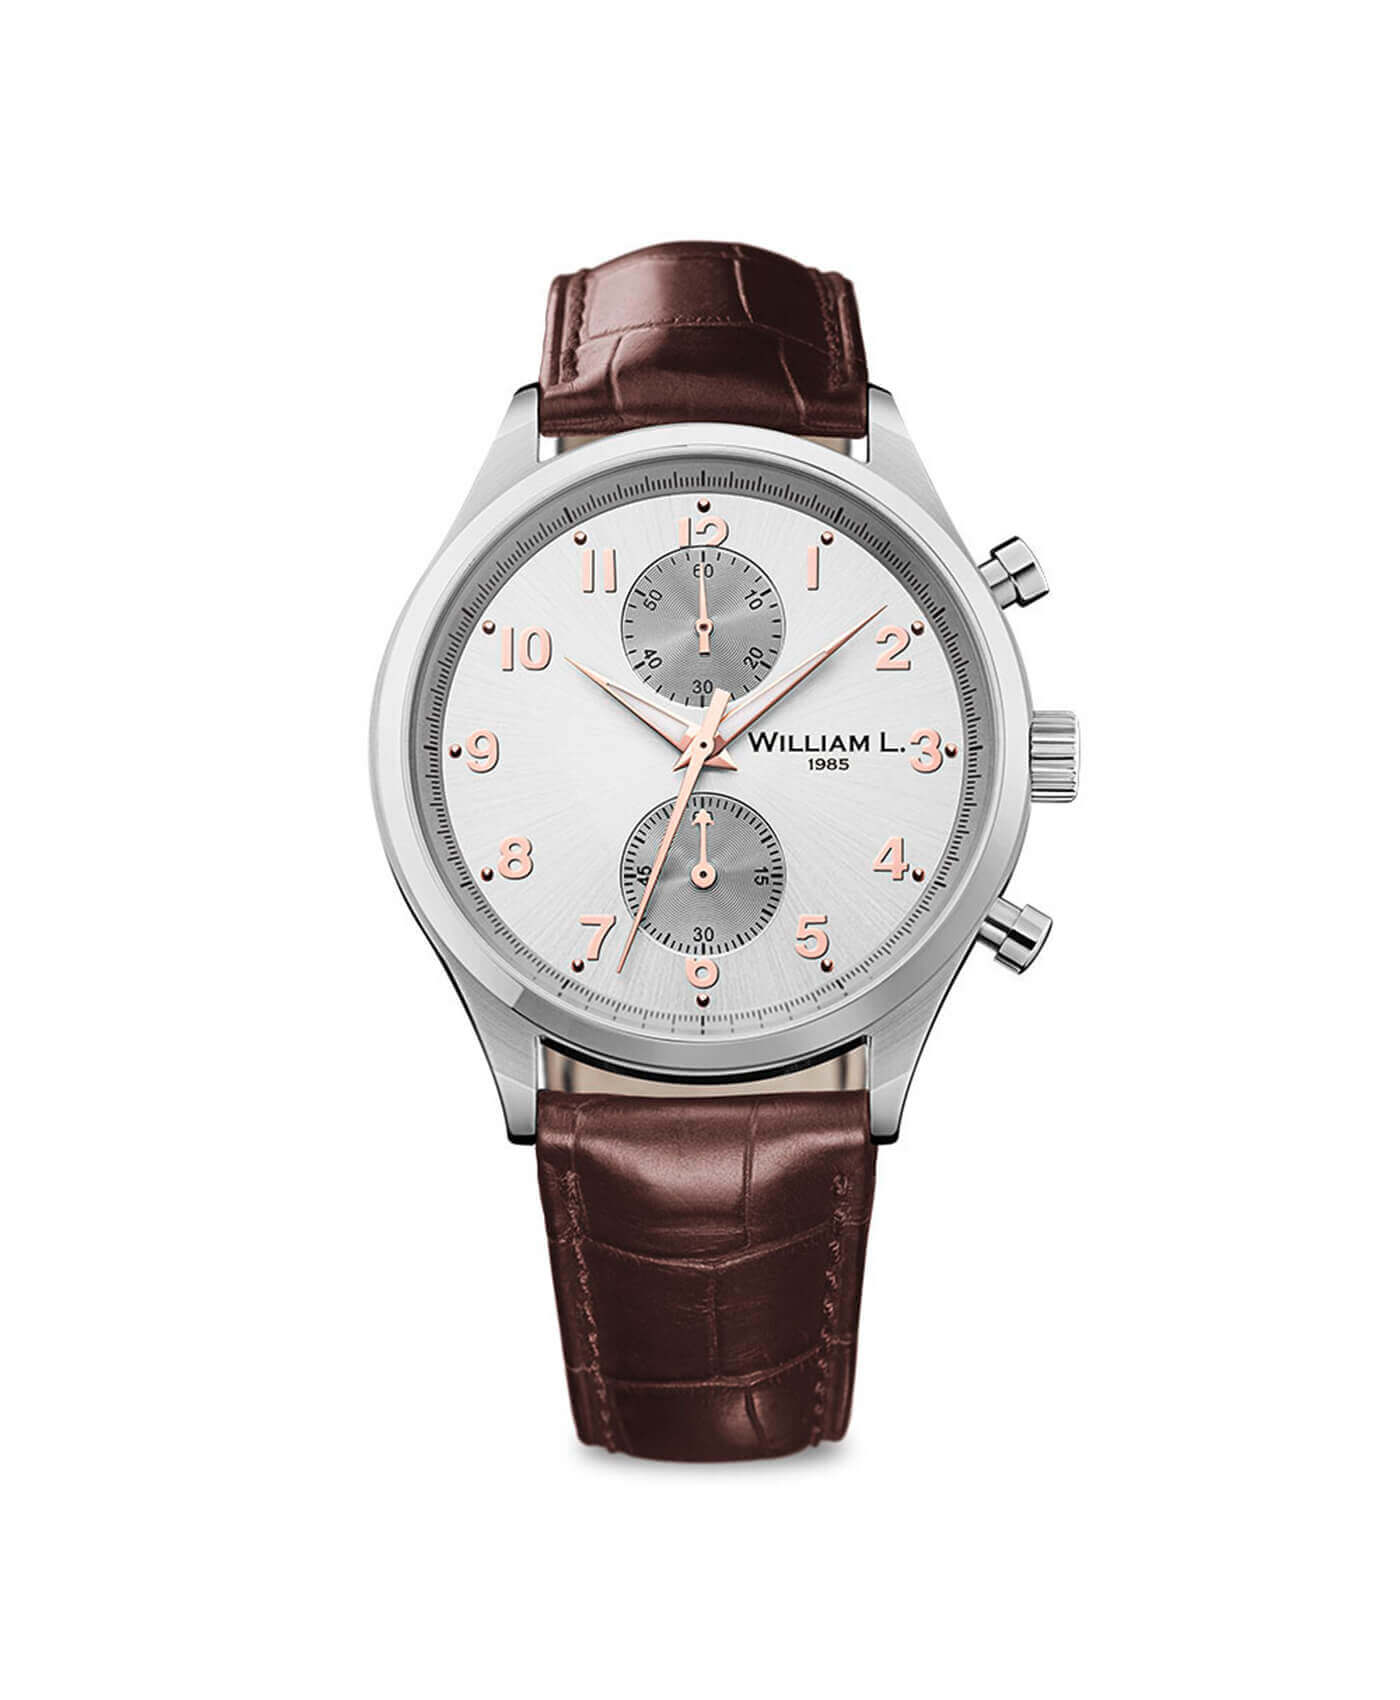 William L. 1985 - Small Chronograph - Silver/Brown